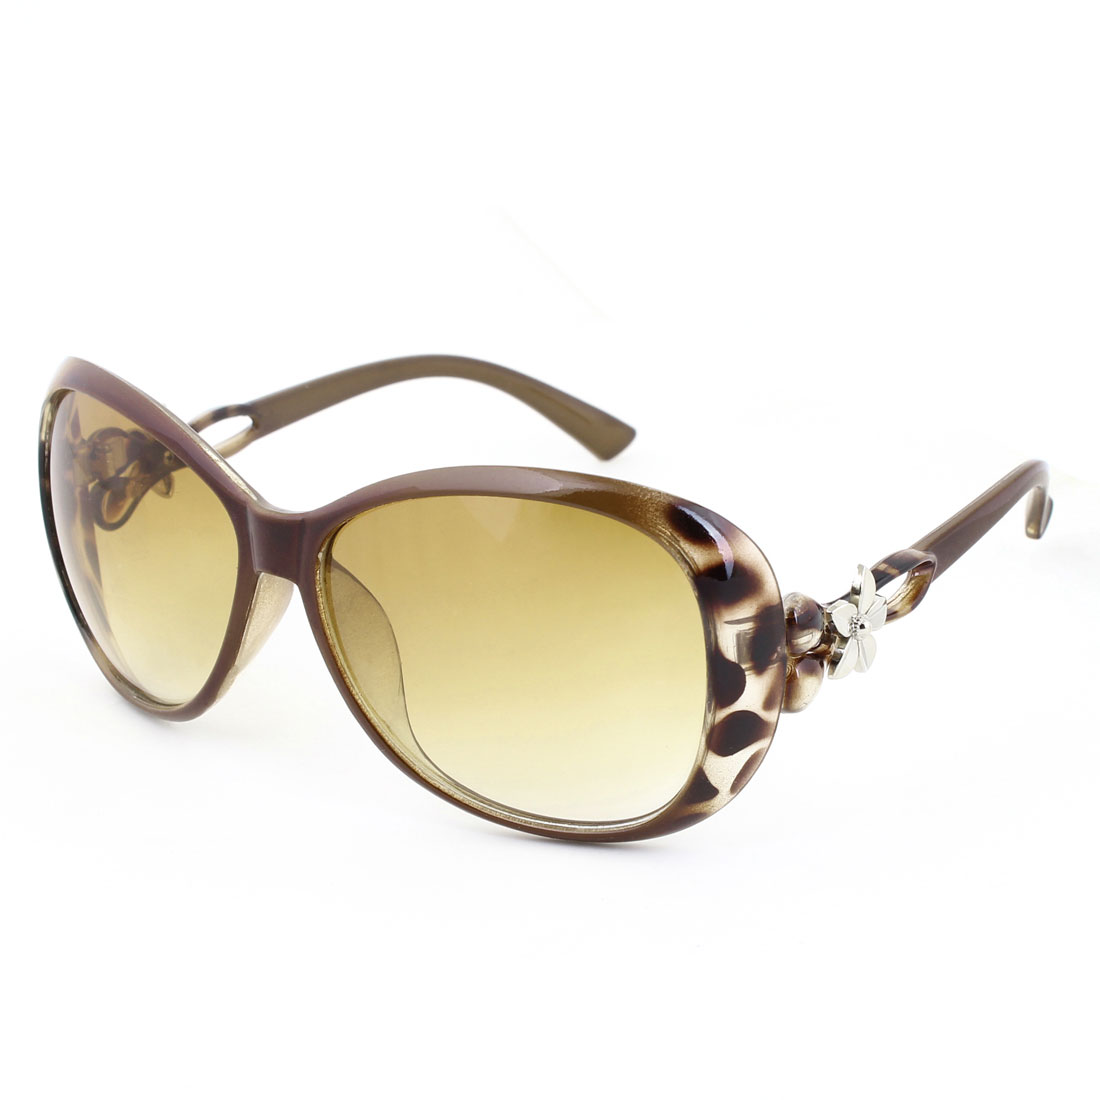 Brown Leopard Print Full Frame Floral Decor Plastic Arms Sunglasses for Ladies